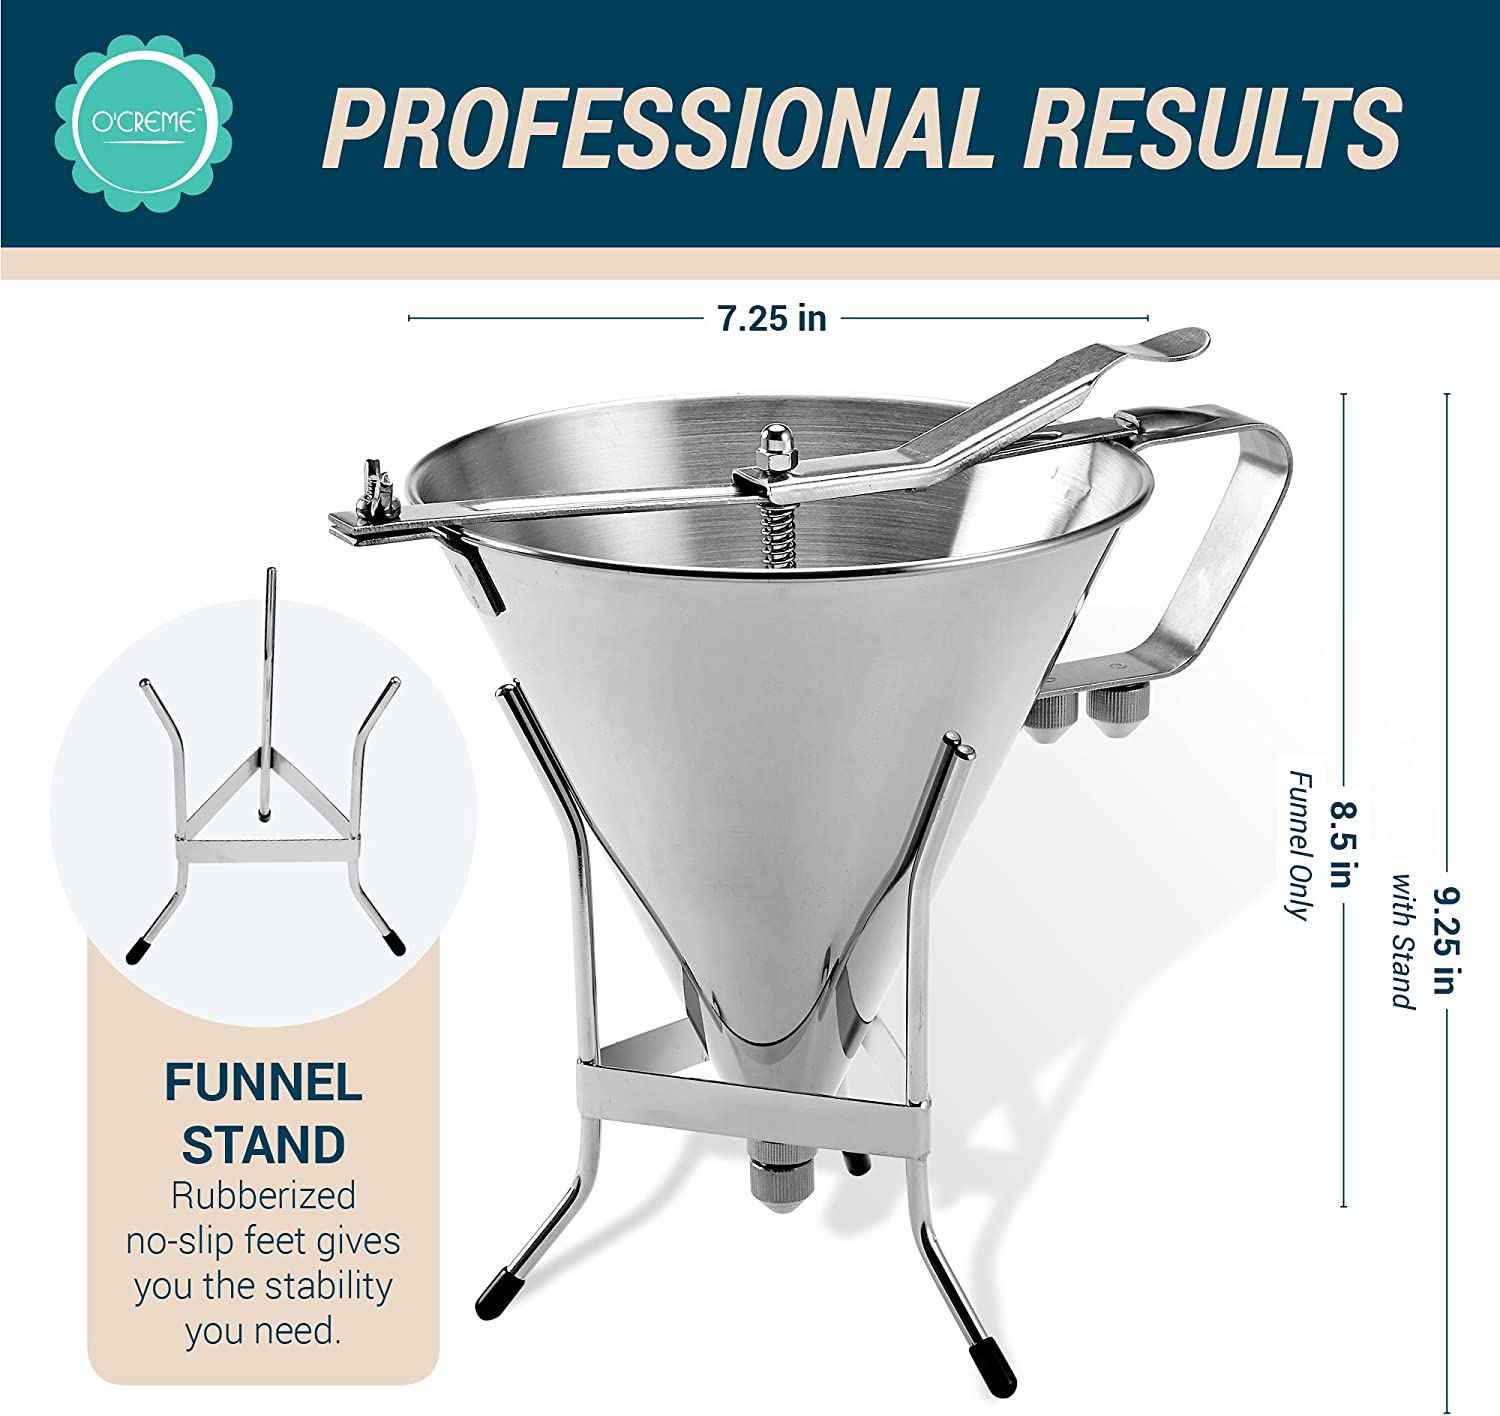 O Creme 500102 Deluxe 2-Liter Confectionery Funnel with Stand